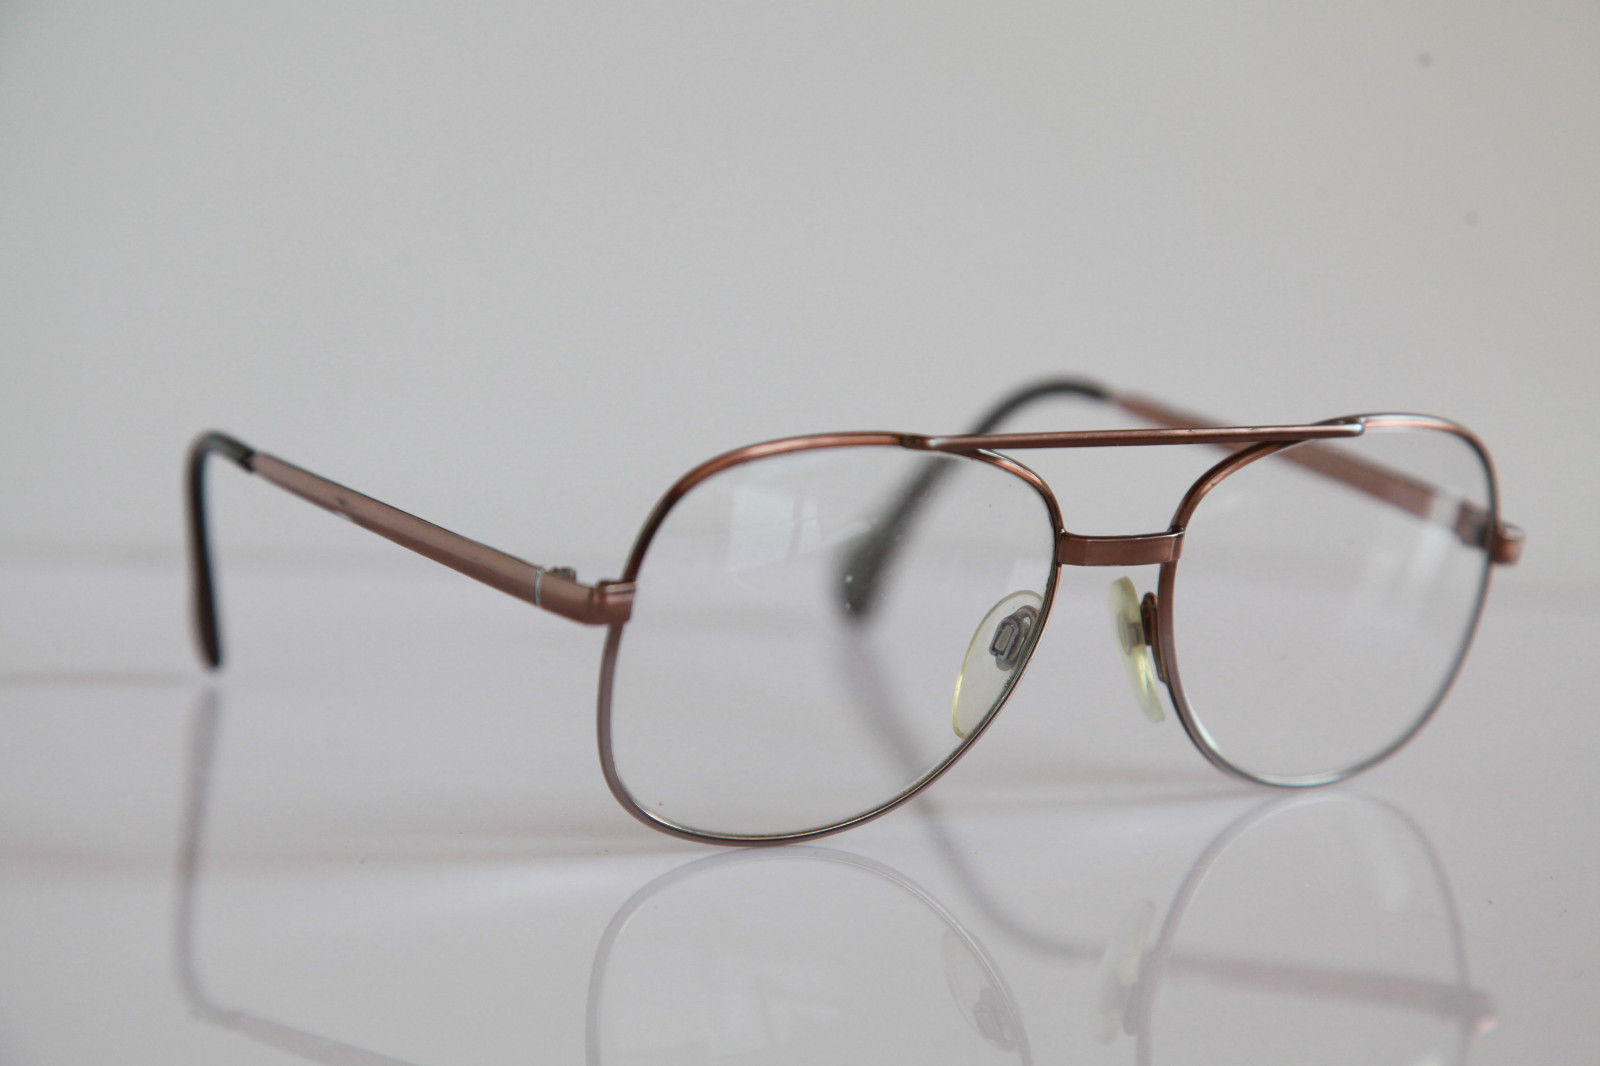 ZEISS, YVES CHANTAL Eyewear, Copper Frame, RX-Able ...